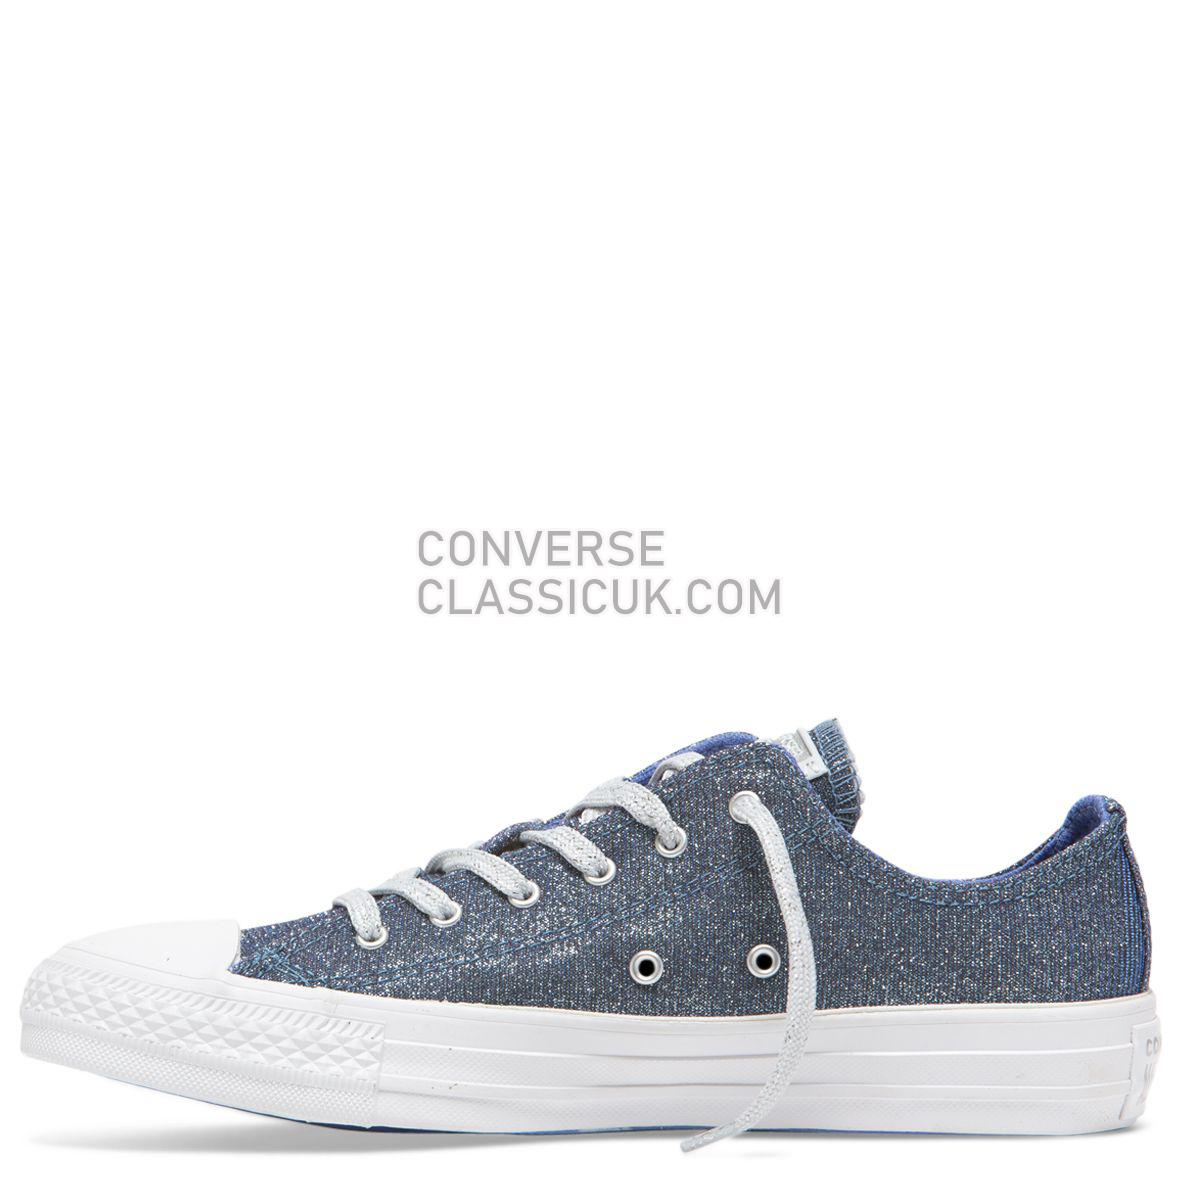 Converse Chuck Taylor All Star Starware Low Top Ozone Blue Womens 564916 Ozone Blue/Light Skye Blue/Pure Platinum Shoes